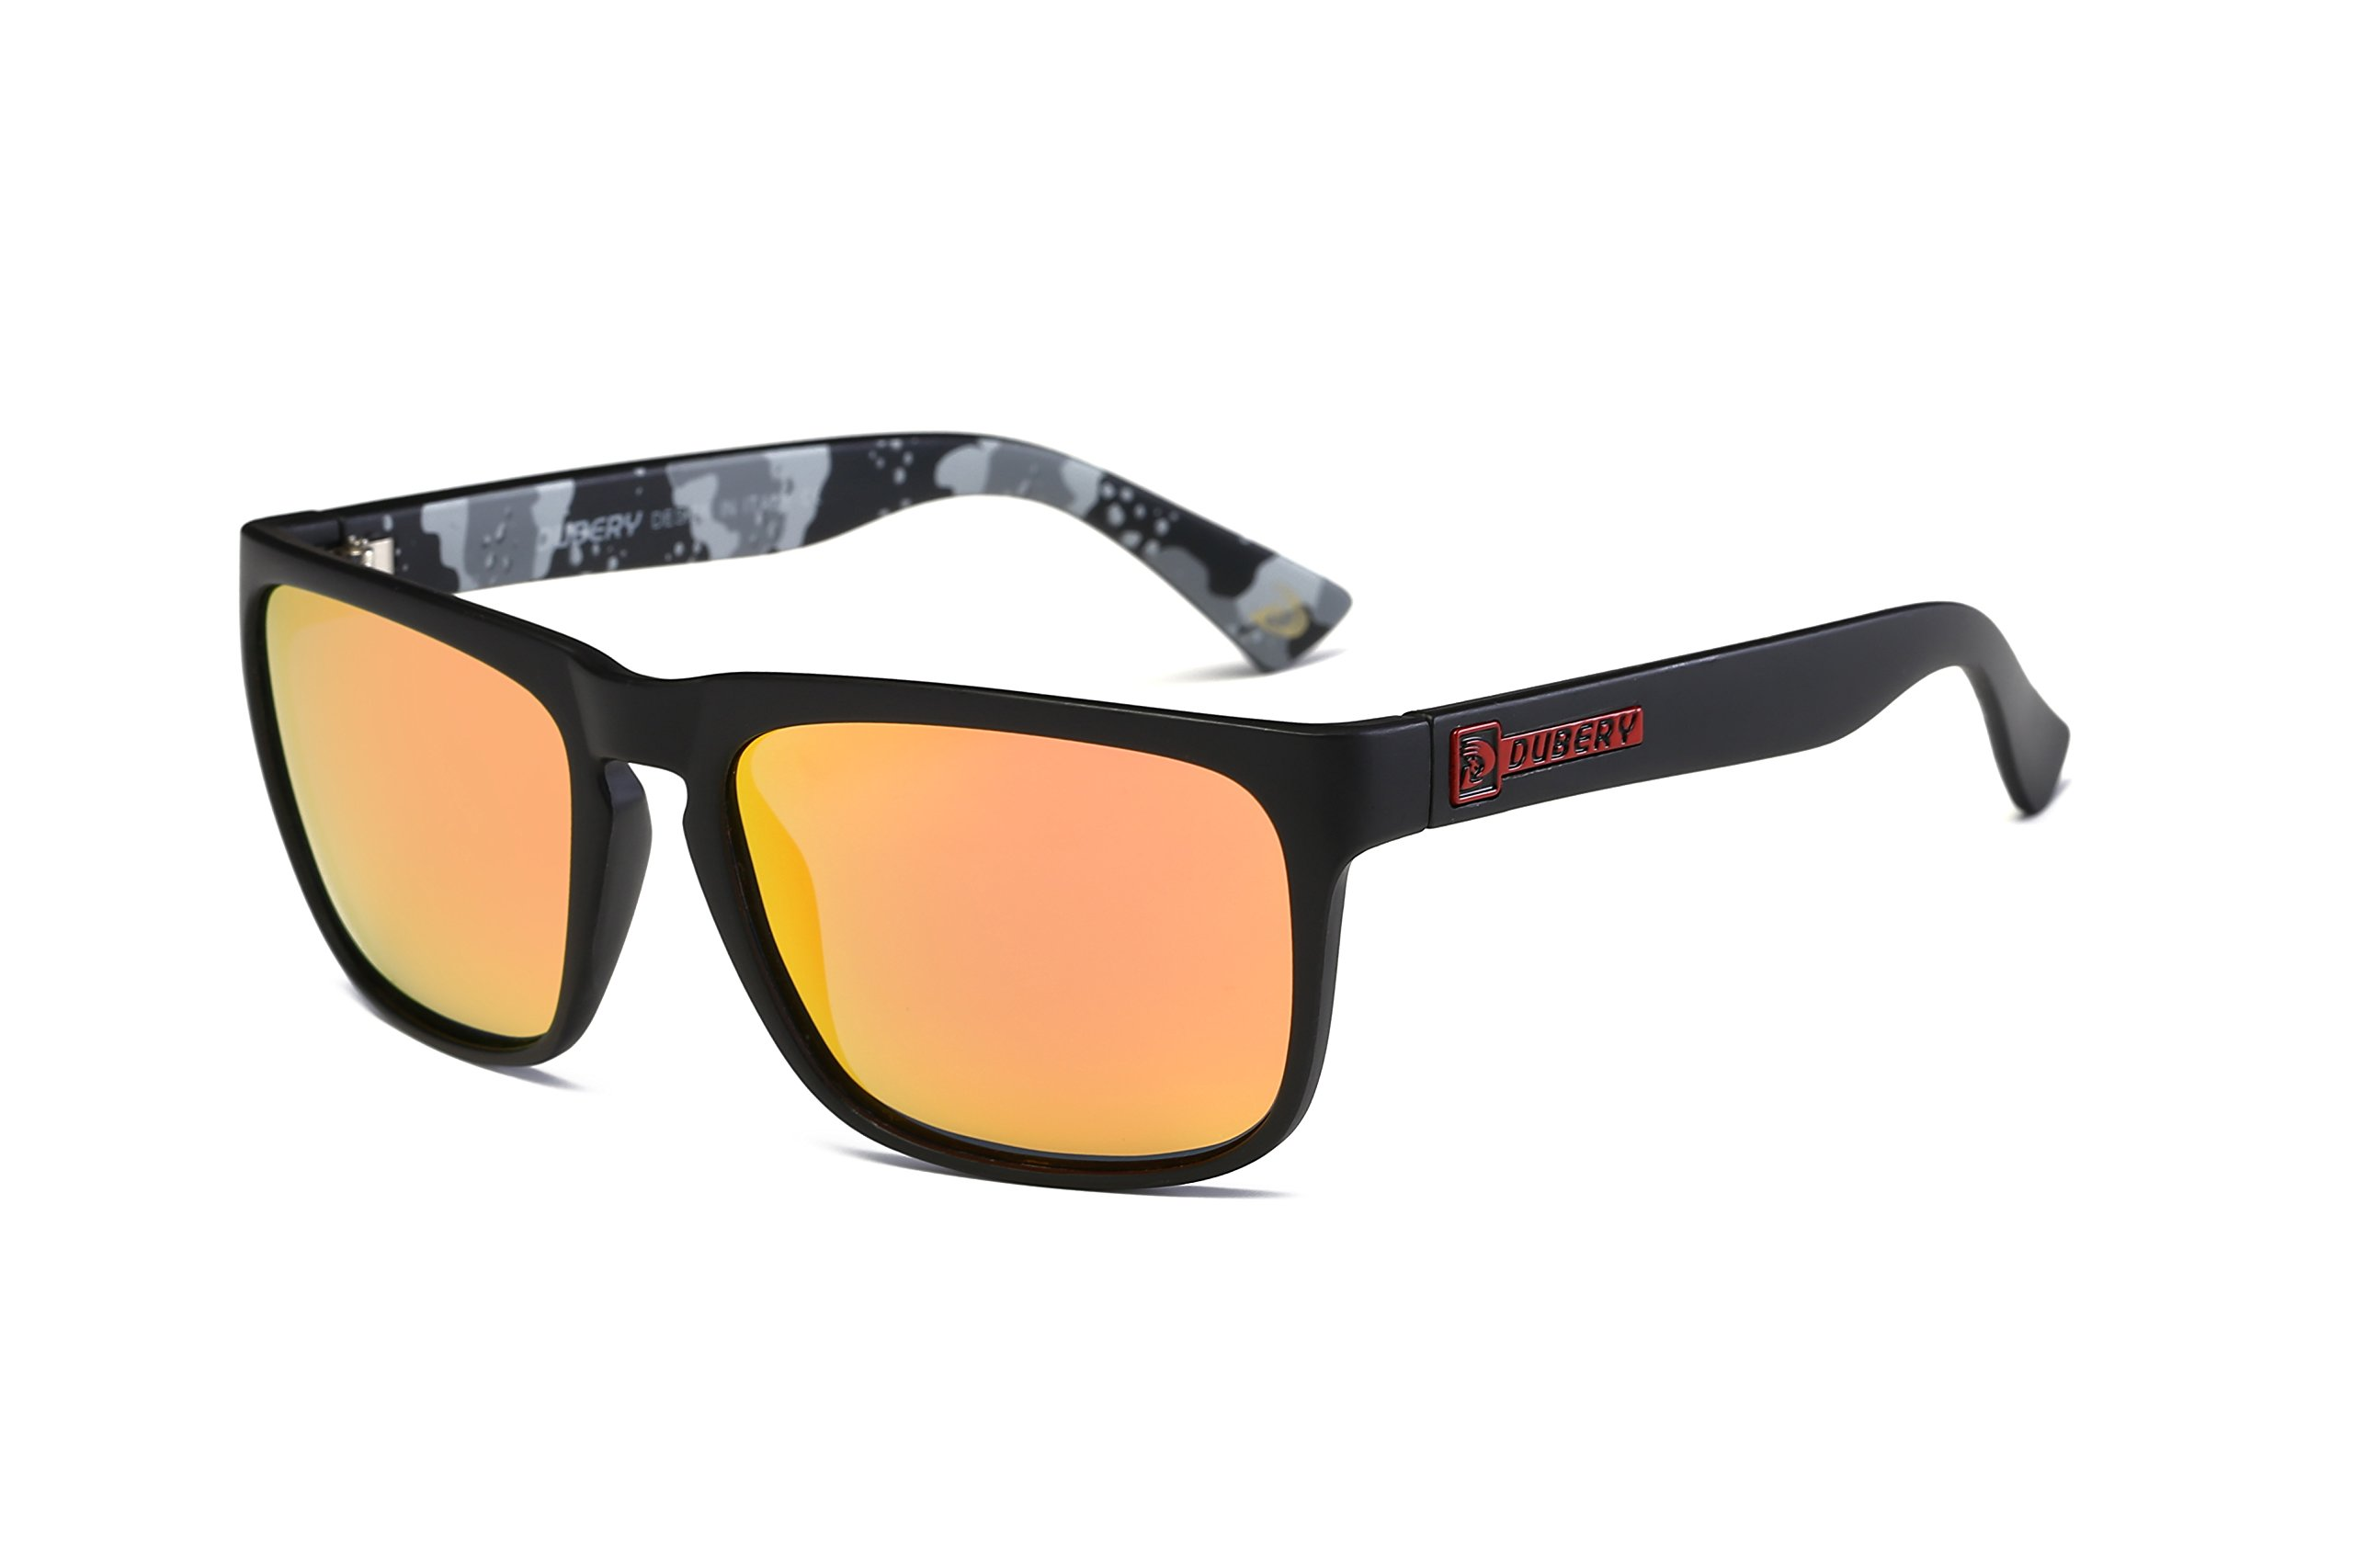 DUBERY Mens Polarized Flying Sunglasses Outdoor Driving Sport Eyewear New (#10) by DUBERY